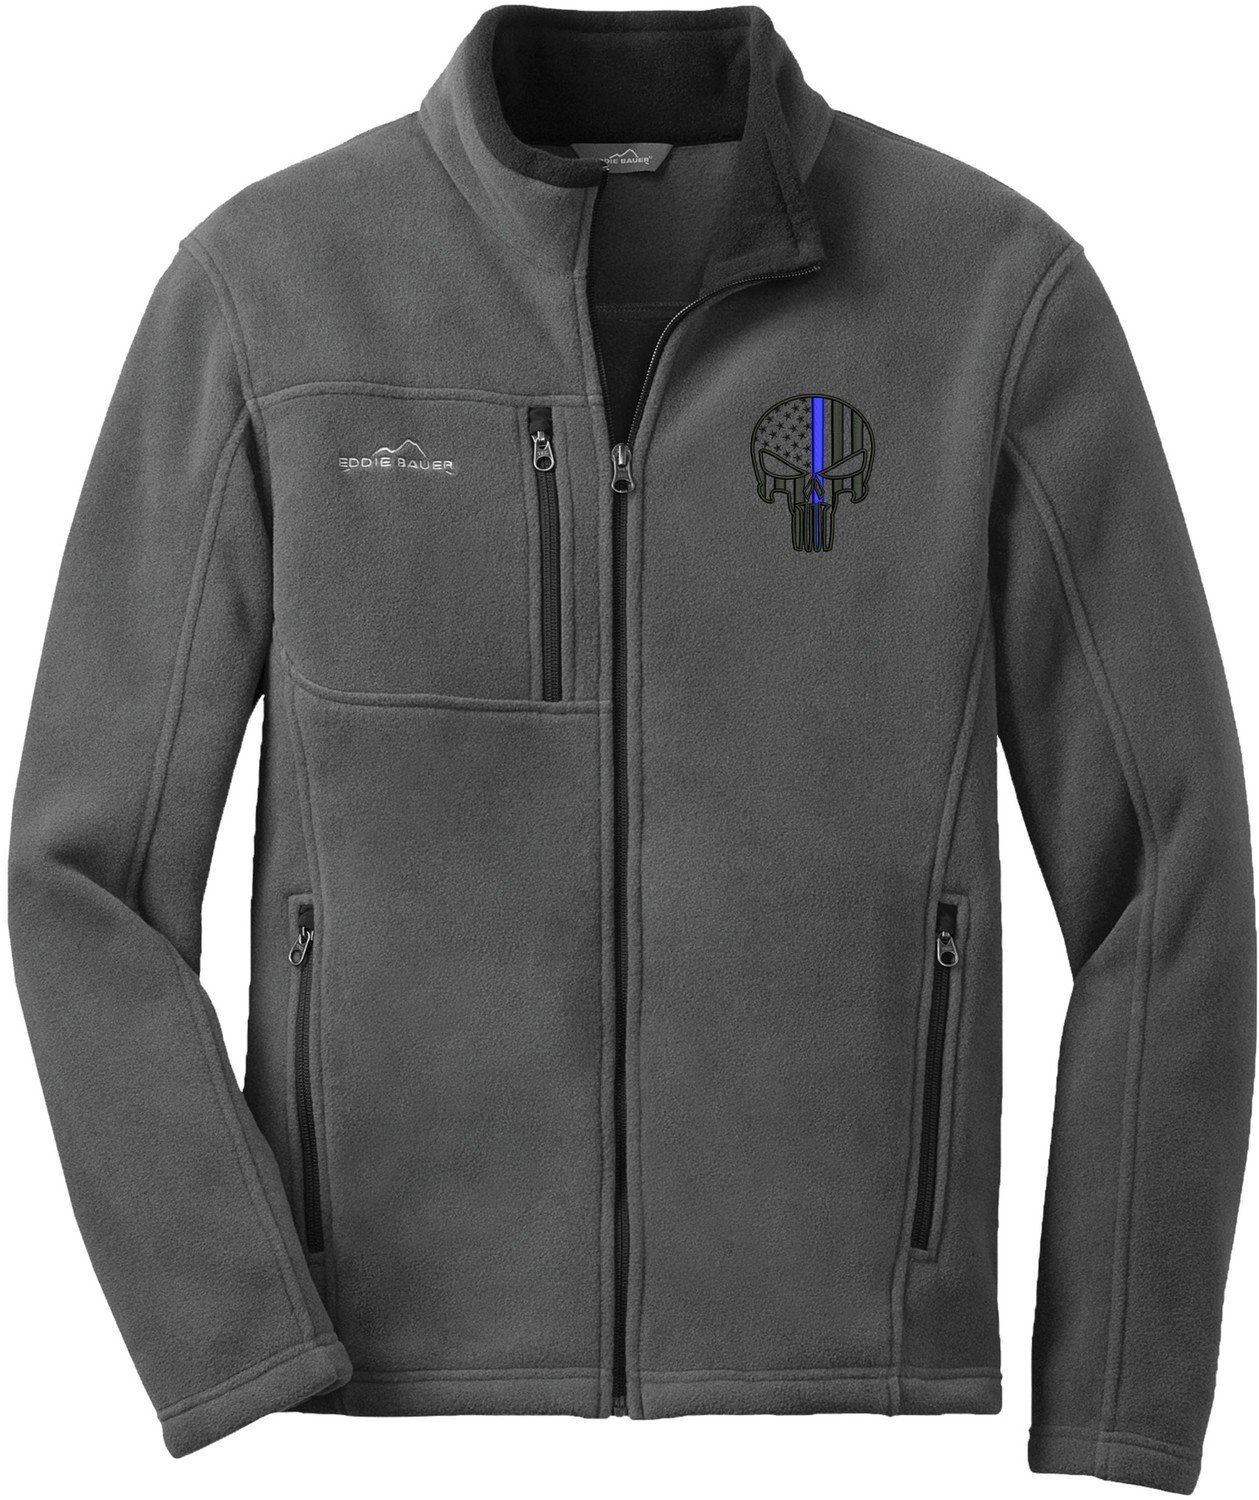 Eddie Bauer Punisher Blue Line Full Zip Fleece Jacket EB200